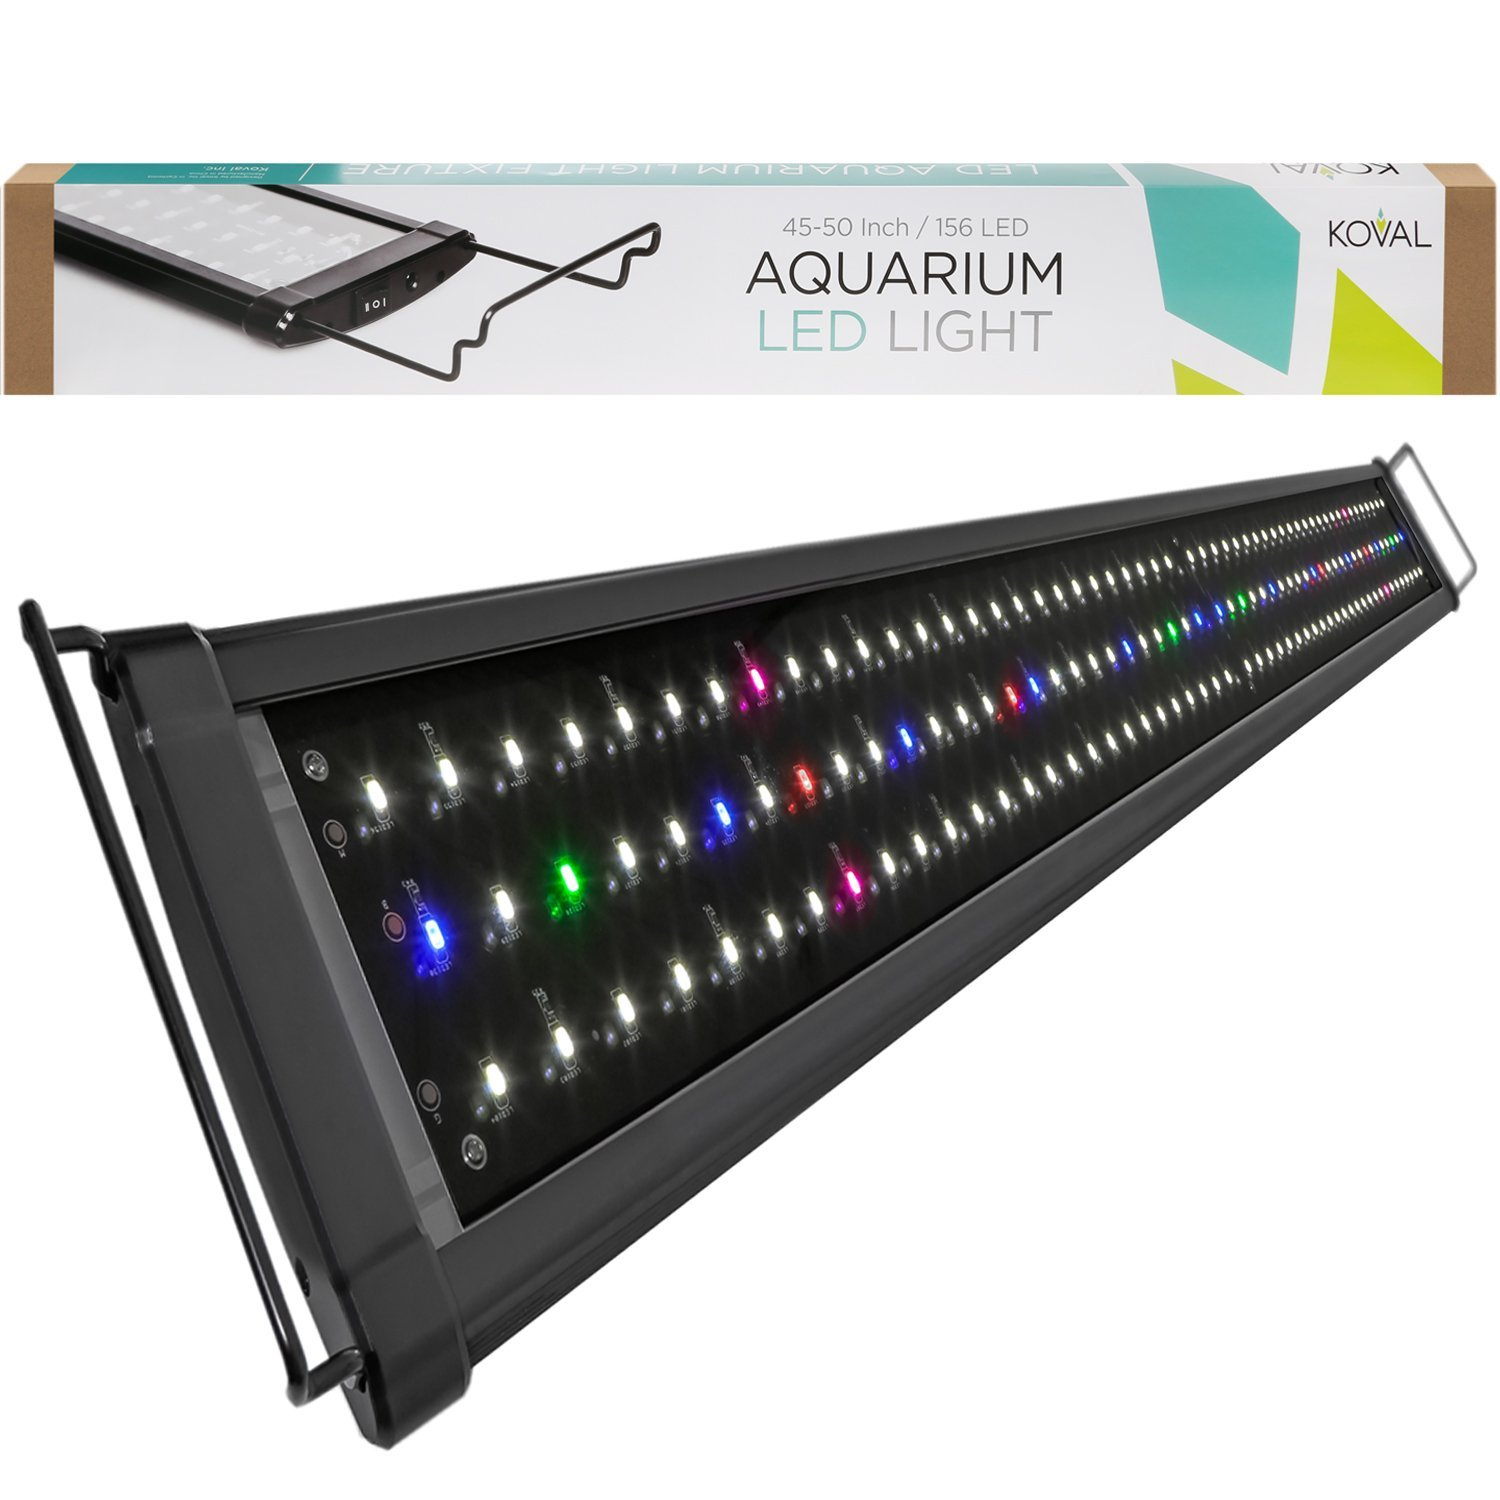 Koval Inc. 156 LED Aquarium Lighting for 45 inch - 50 inc...